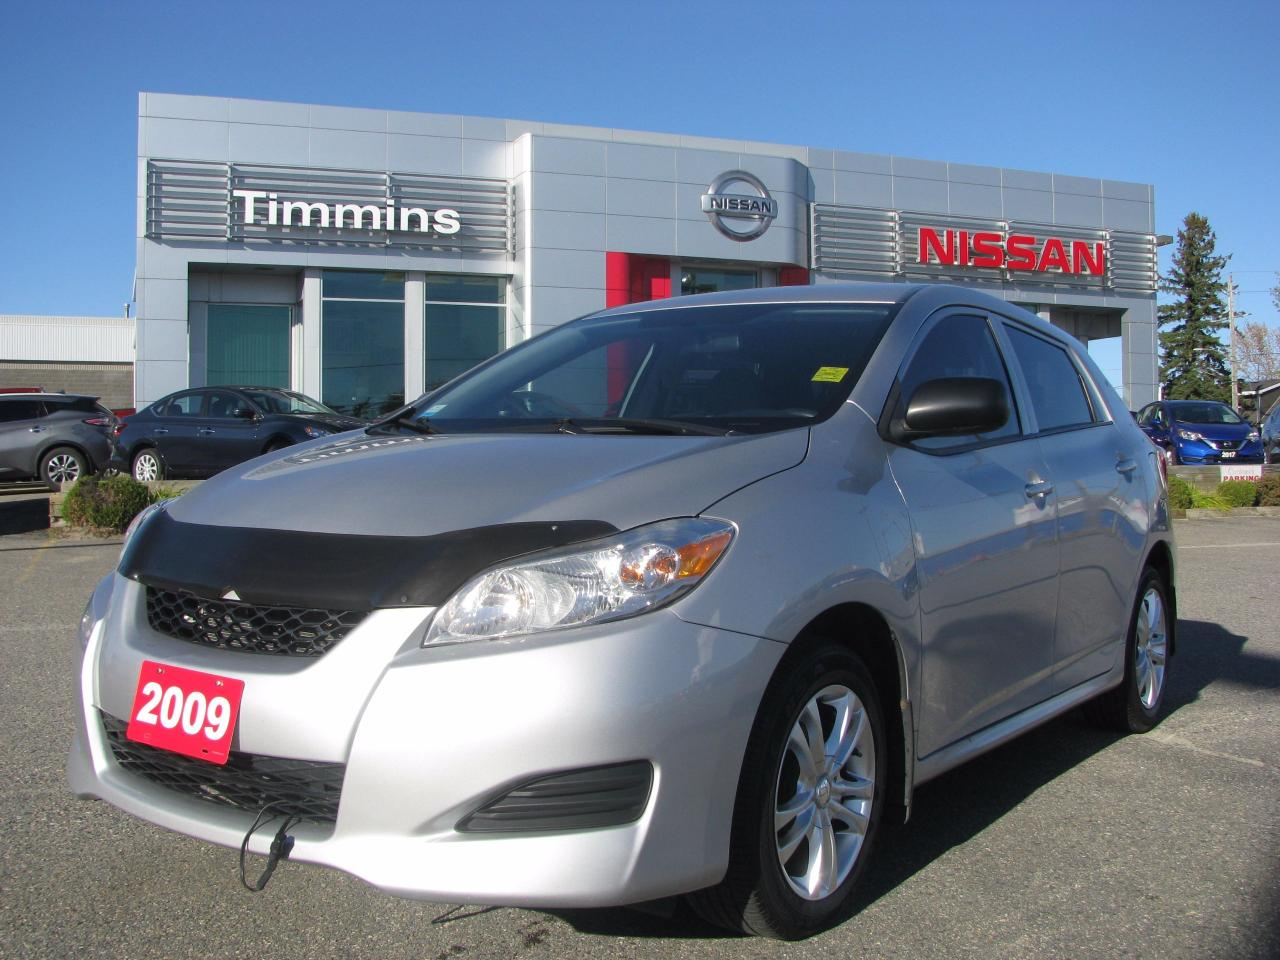 2014 toyota matrix still available in canada the car guide motoring tv. Black Bedroom Furniture Sets. Home Design Ideas